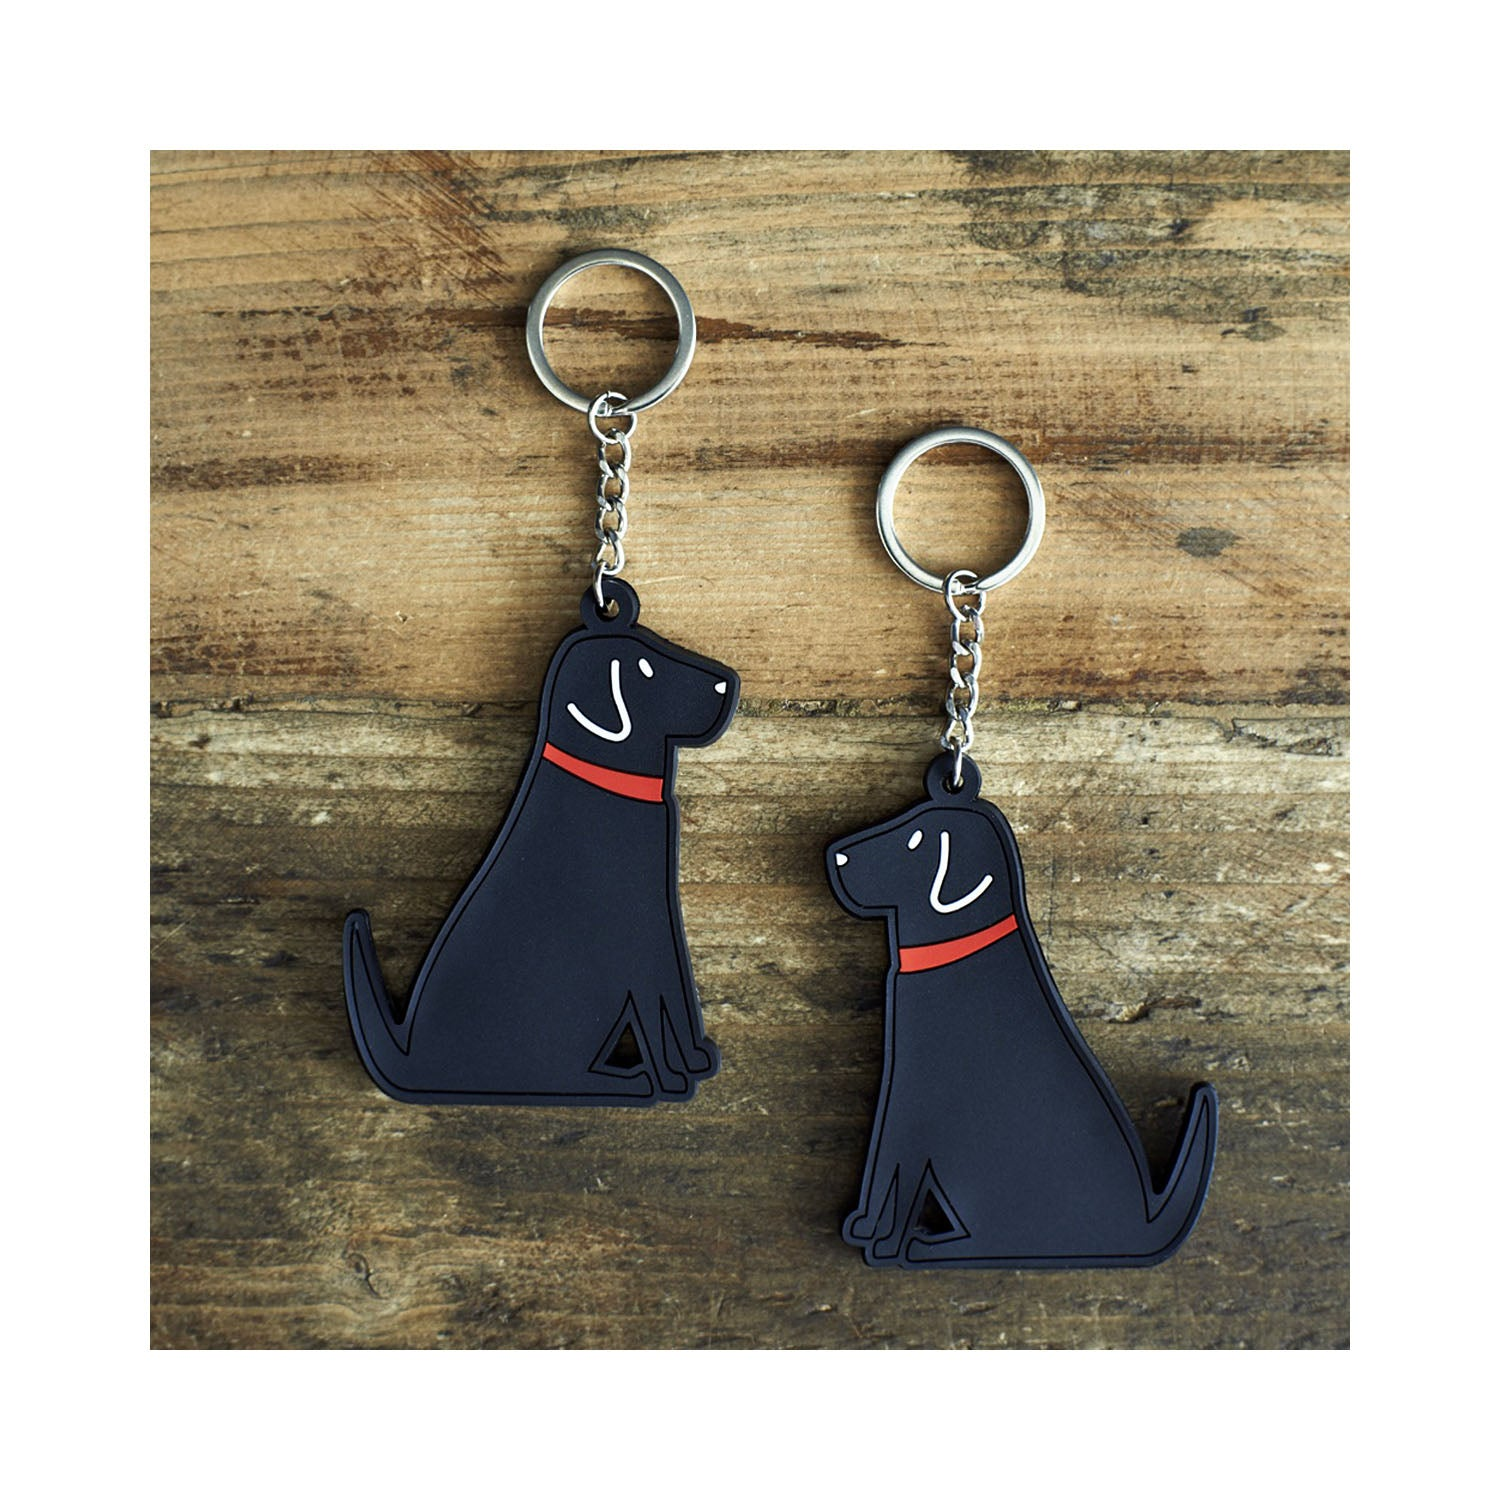 Dog Lover Gifts available at Dog Krazy Gifts - William The Black Labrador Keyring by Sweet William - part of the Labrador collection of Dog Lovers Gifts available from Dog Krazy Gifts